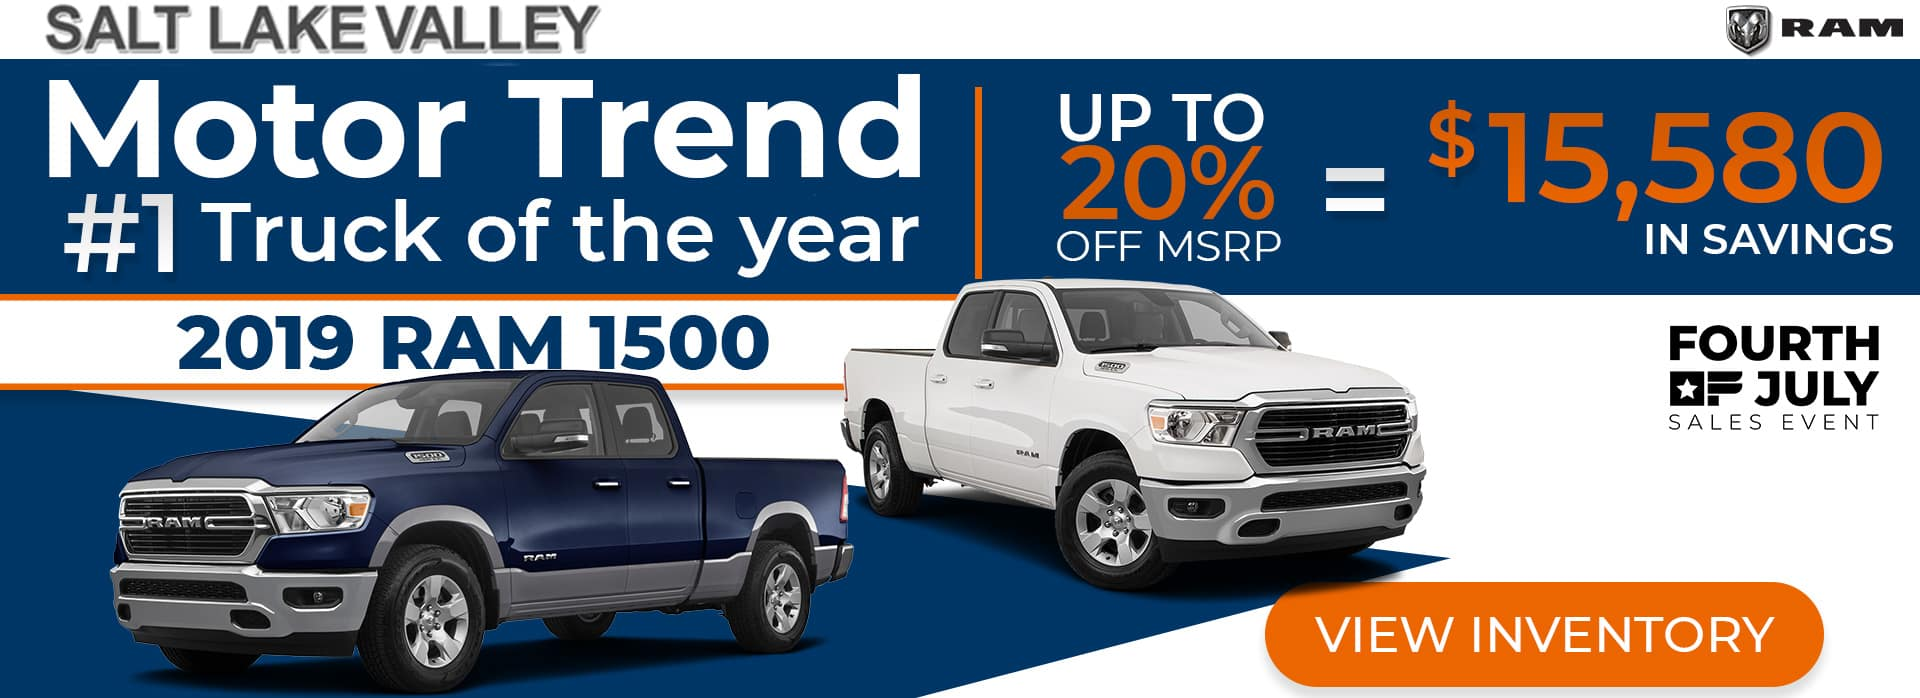 4th of July Sales Event on RAM 1500 DT